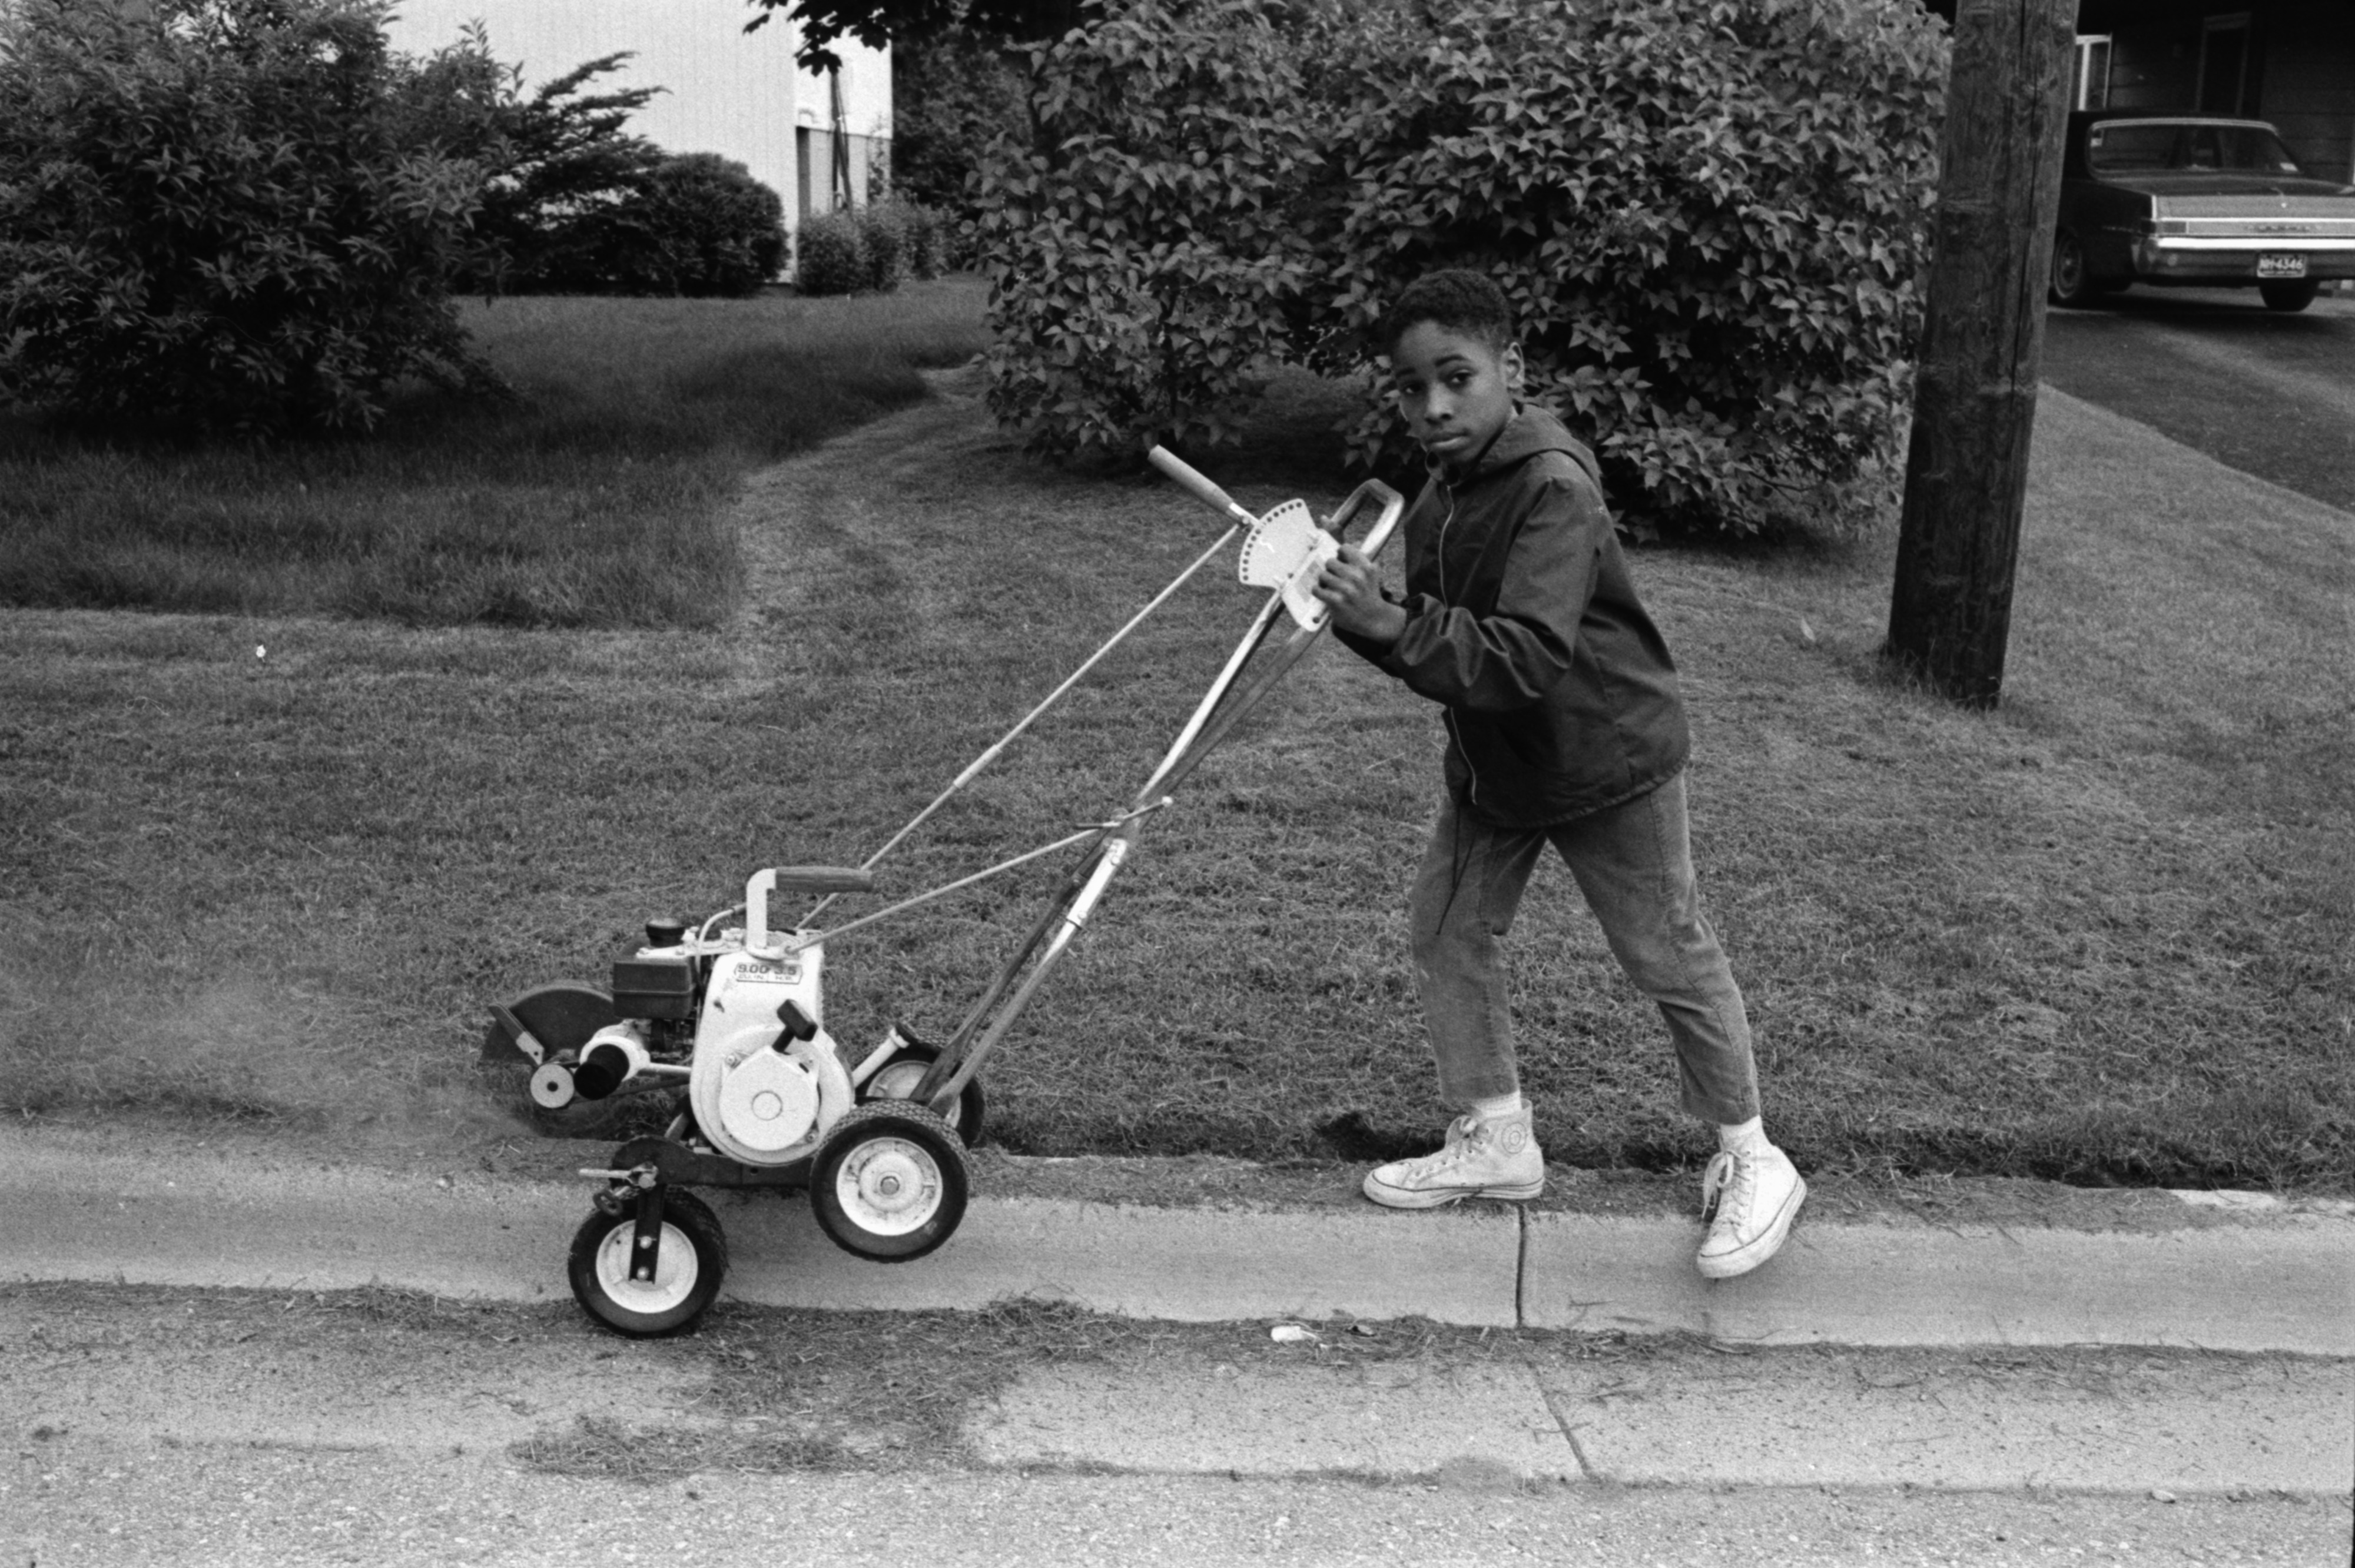 Dorian L. Deaver Mowing Grass, June 1969 image